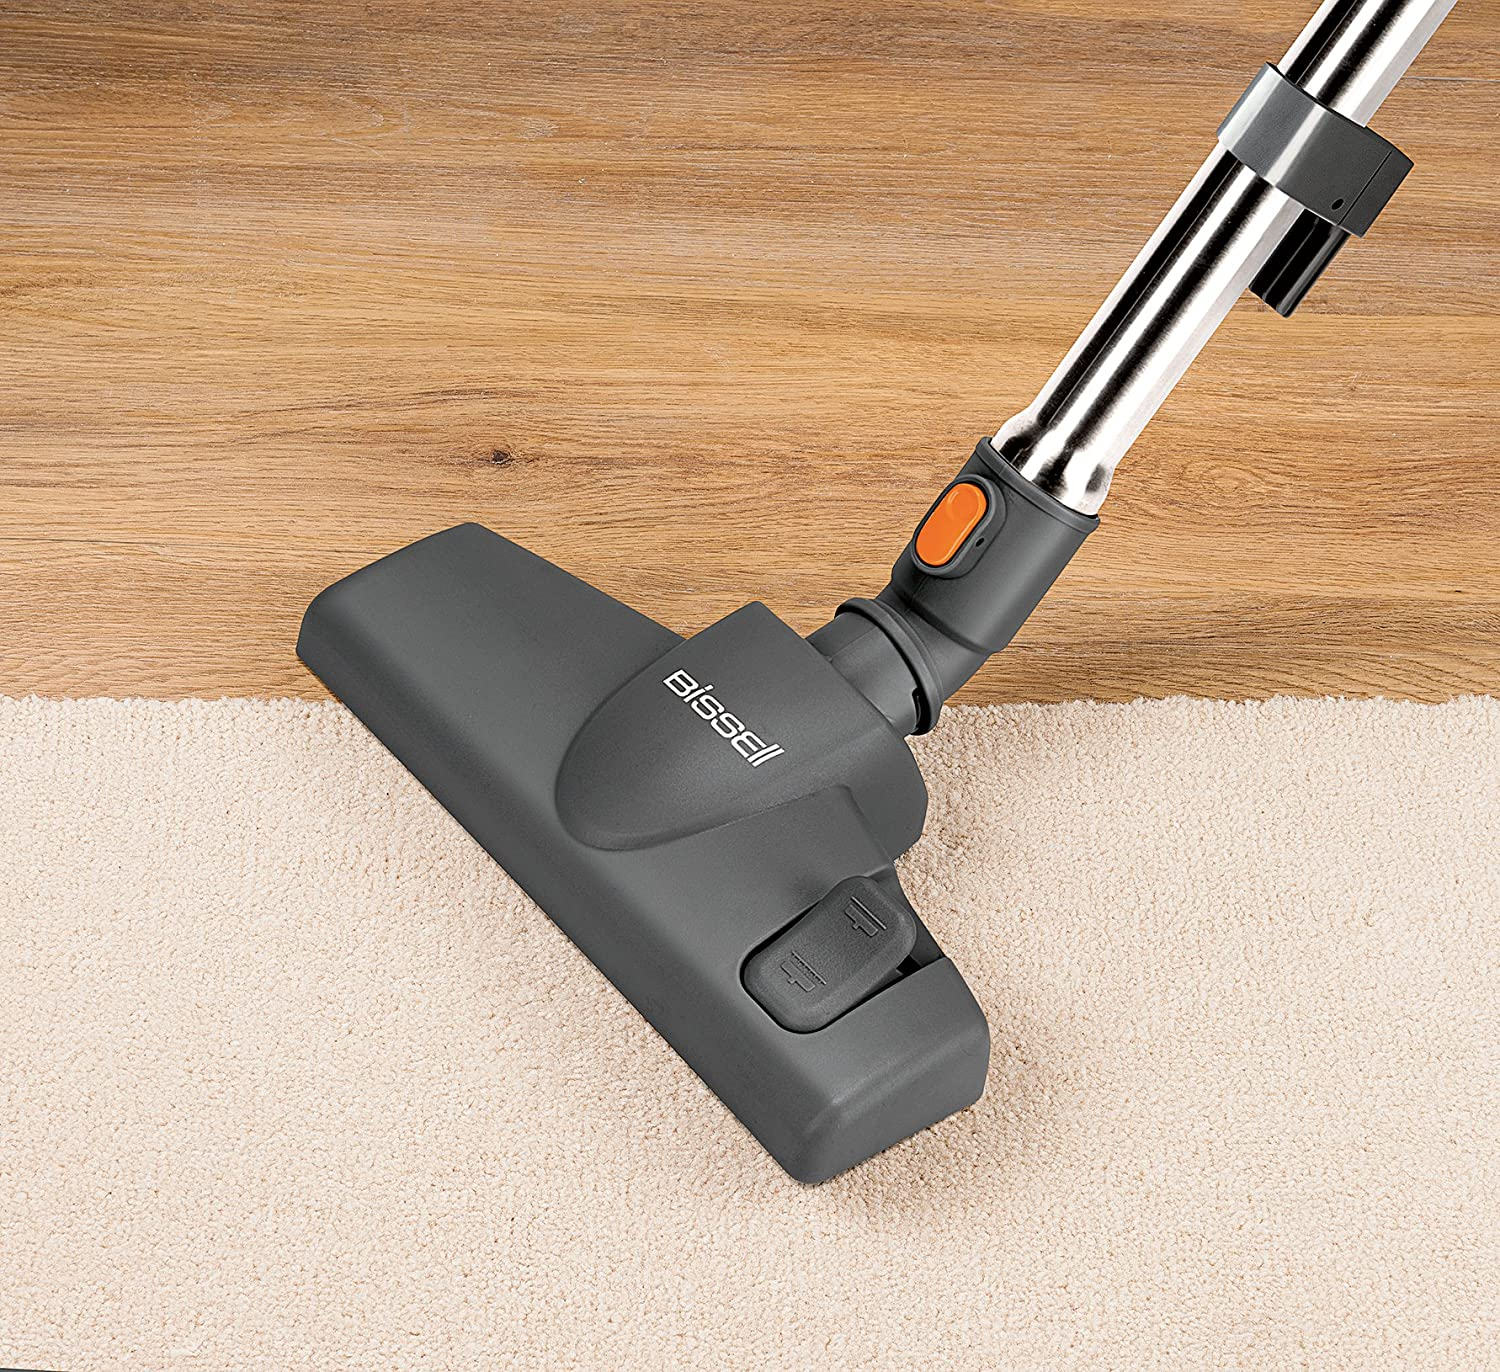 scotch brite bissell hardwood vacuum depot refill home cleaner bona steam floor mop dyson refillable quickie kit